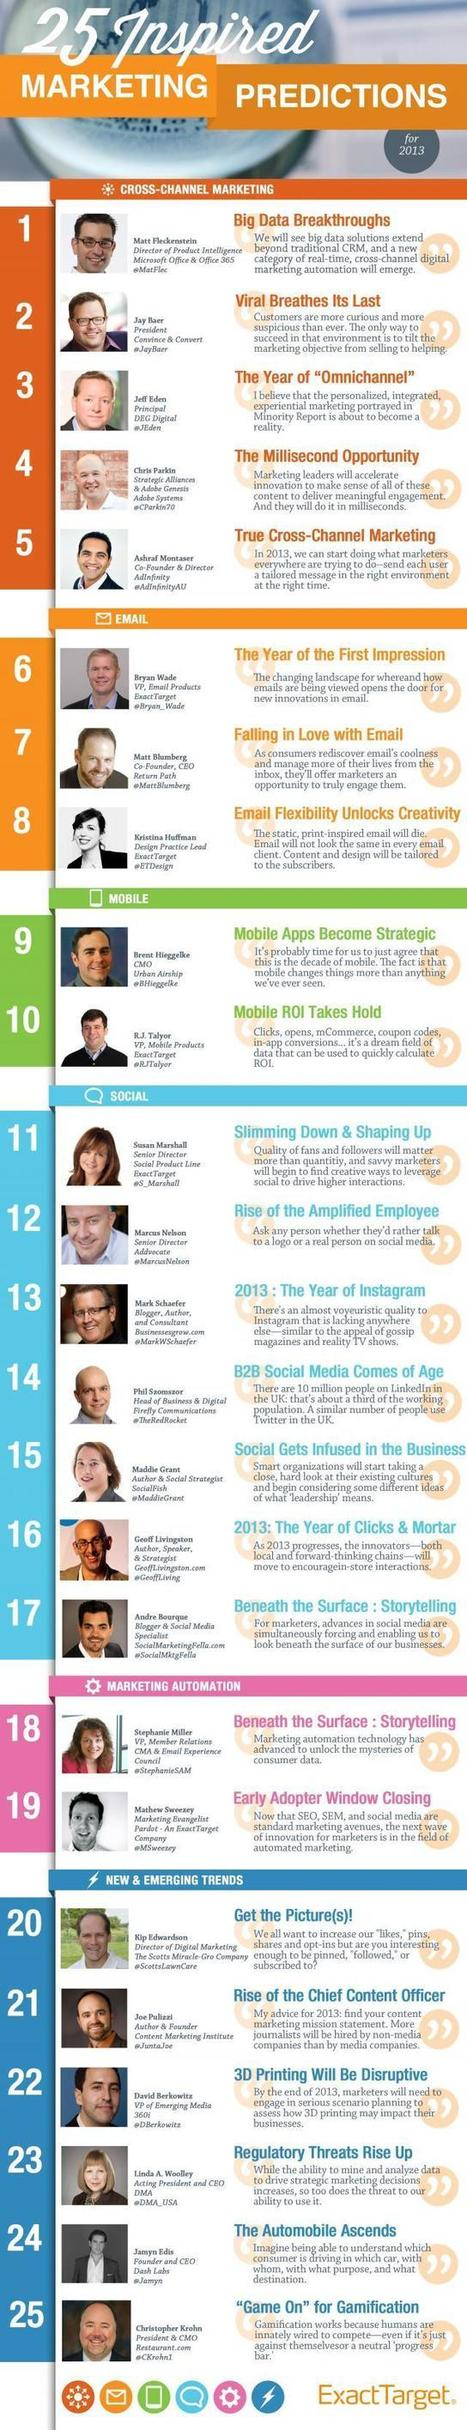 25 Inspired Marketing Predictions for 2013 | Social Media Tips, News, Resources | Scoop.it